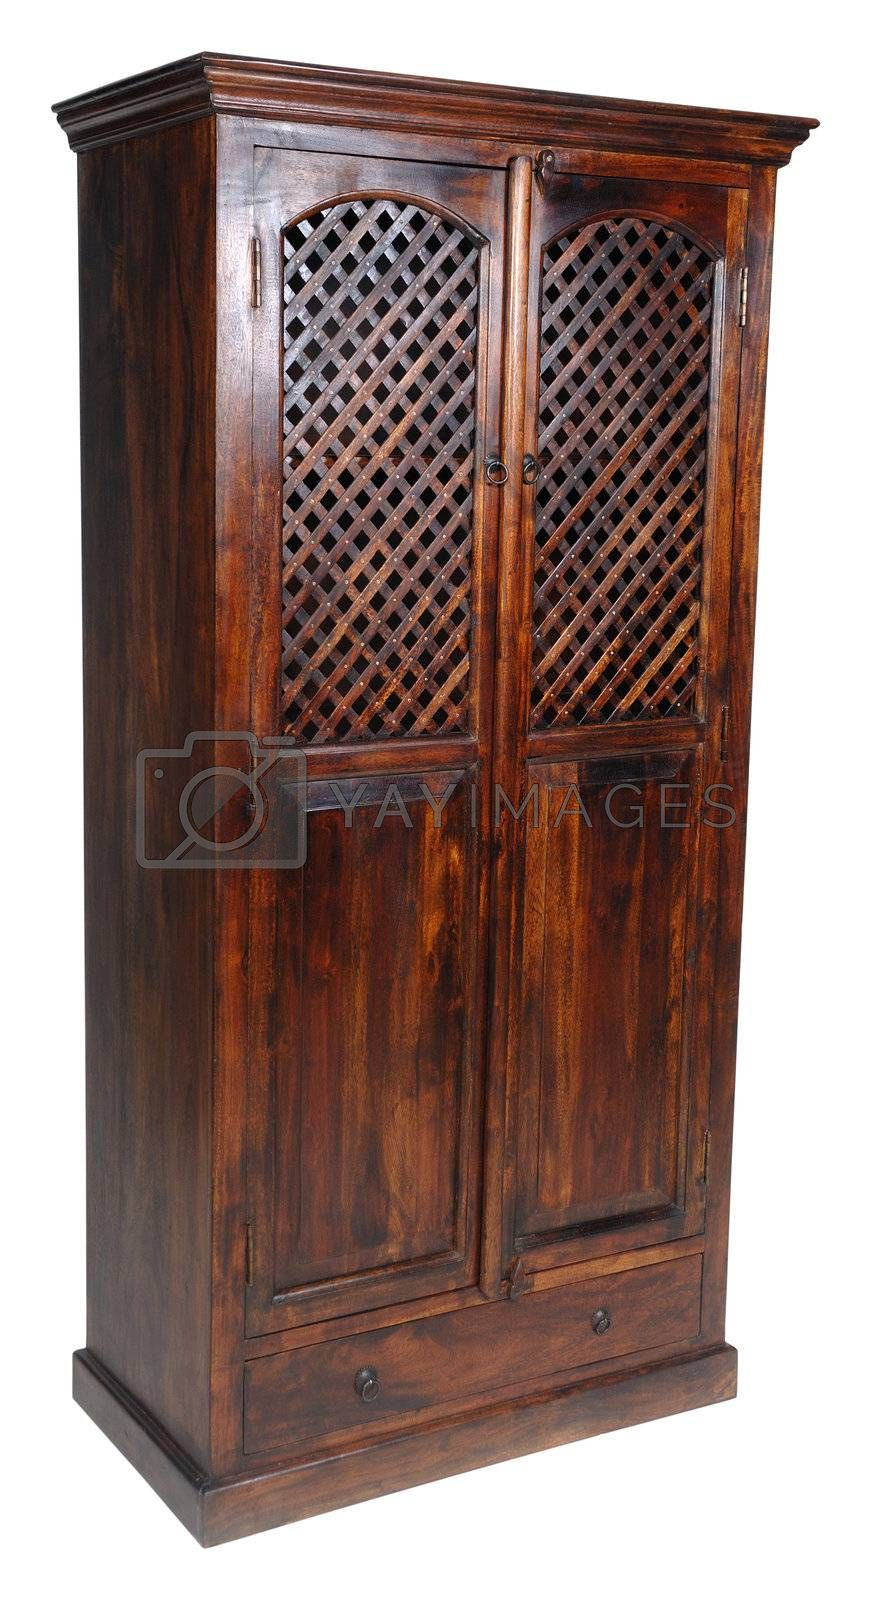 Royalty free image of Cupboard by cfoto